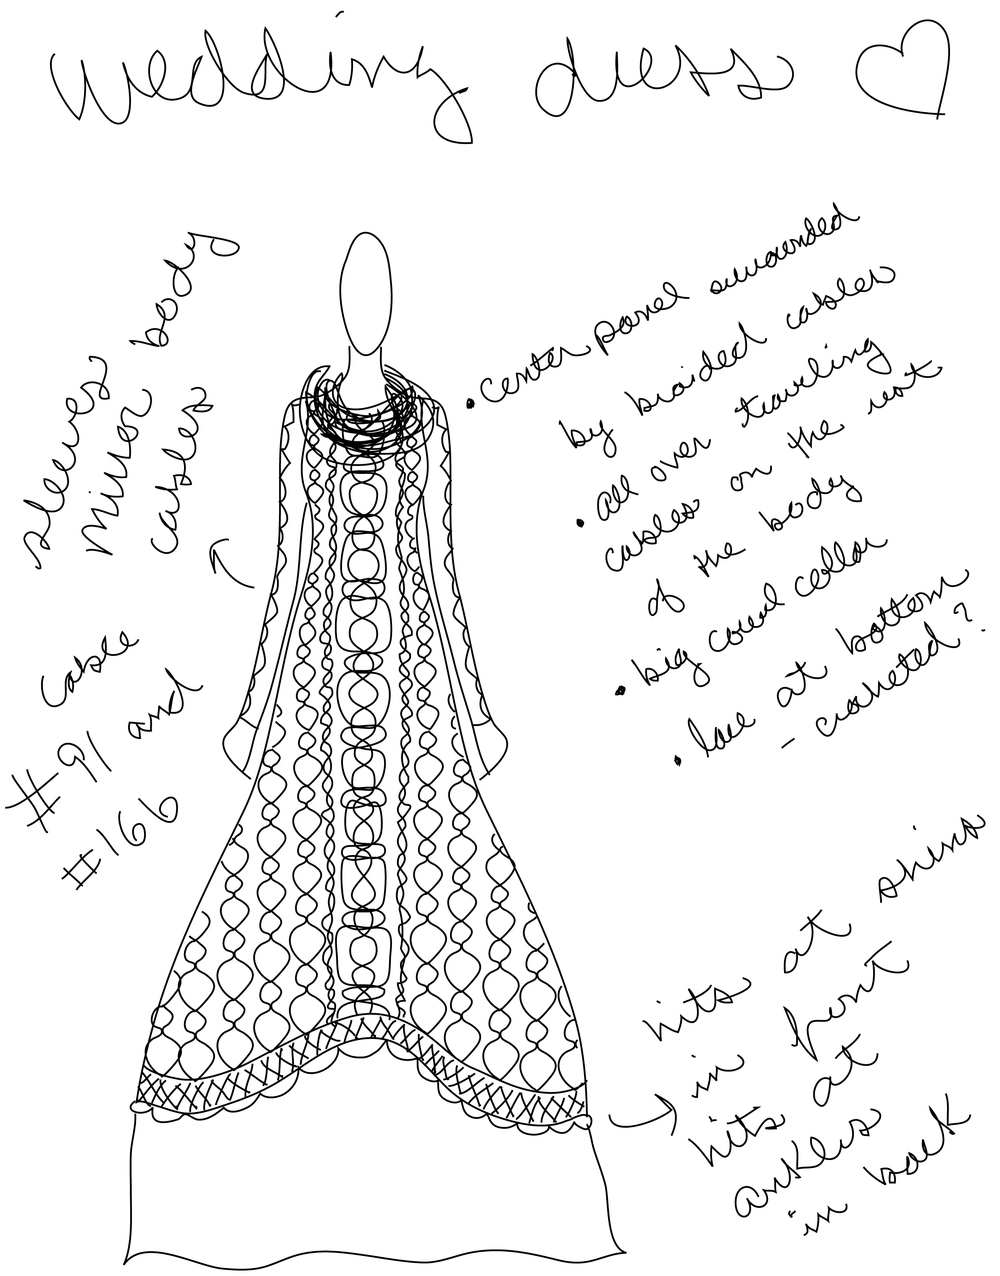 Sketching the dress.